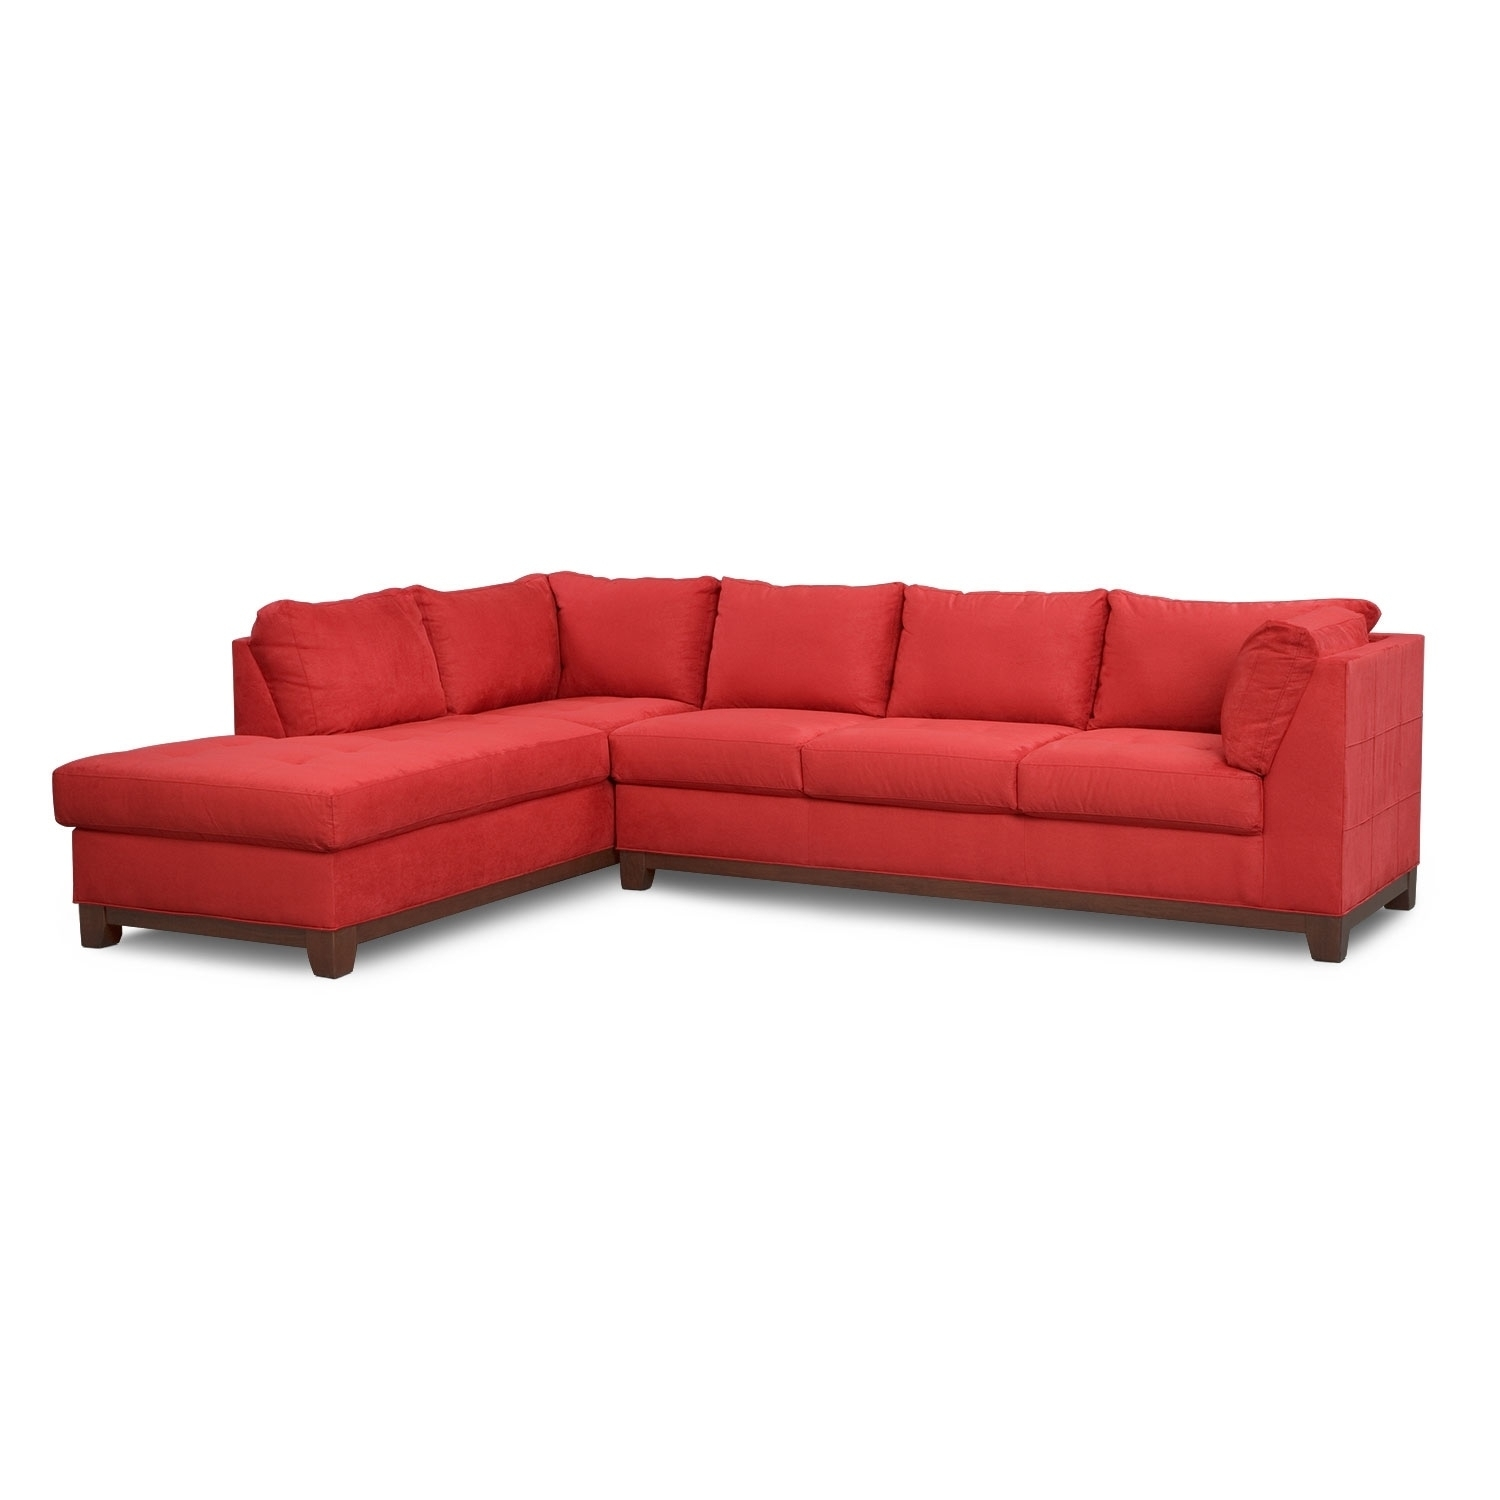 Soho 2-Piece Sectional With Left-Facing Chaise - Red | Value City in Haven 3 Piece Sectionals (Image 30 of 32)